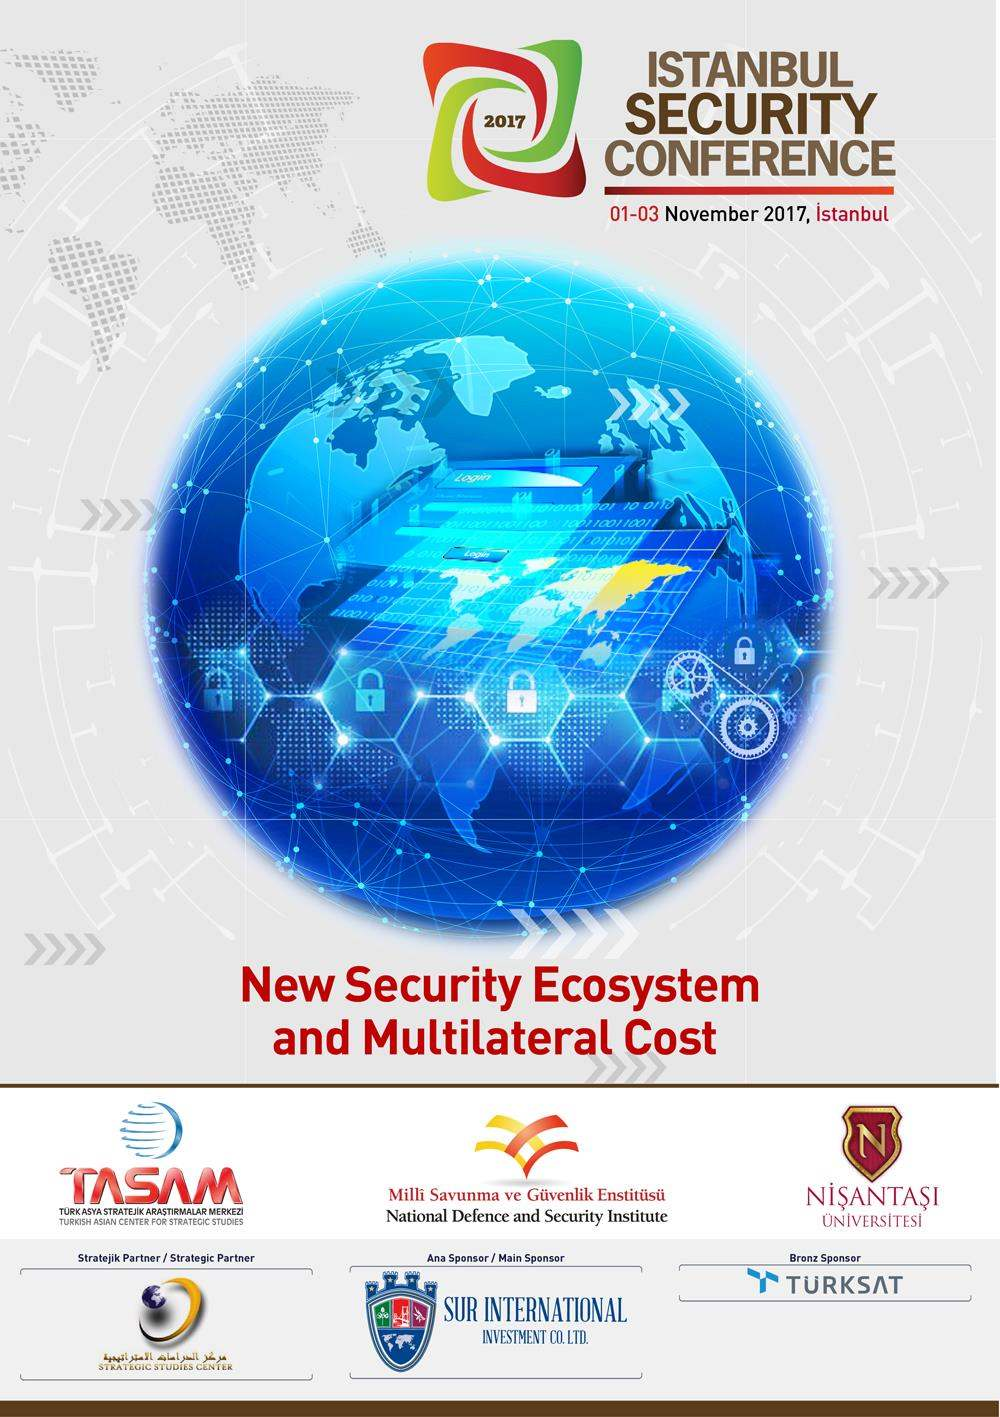 Istanbul Security Conference 2017